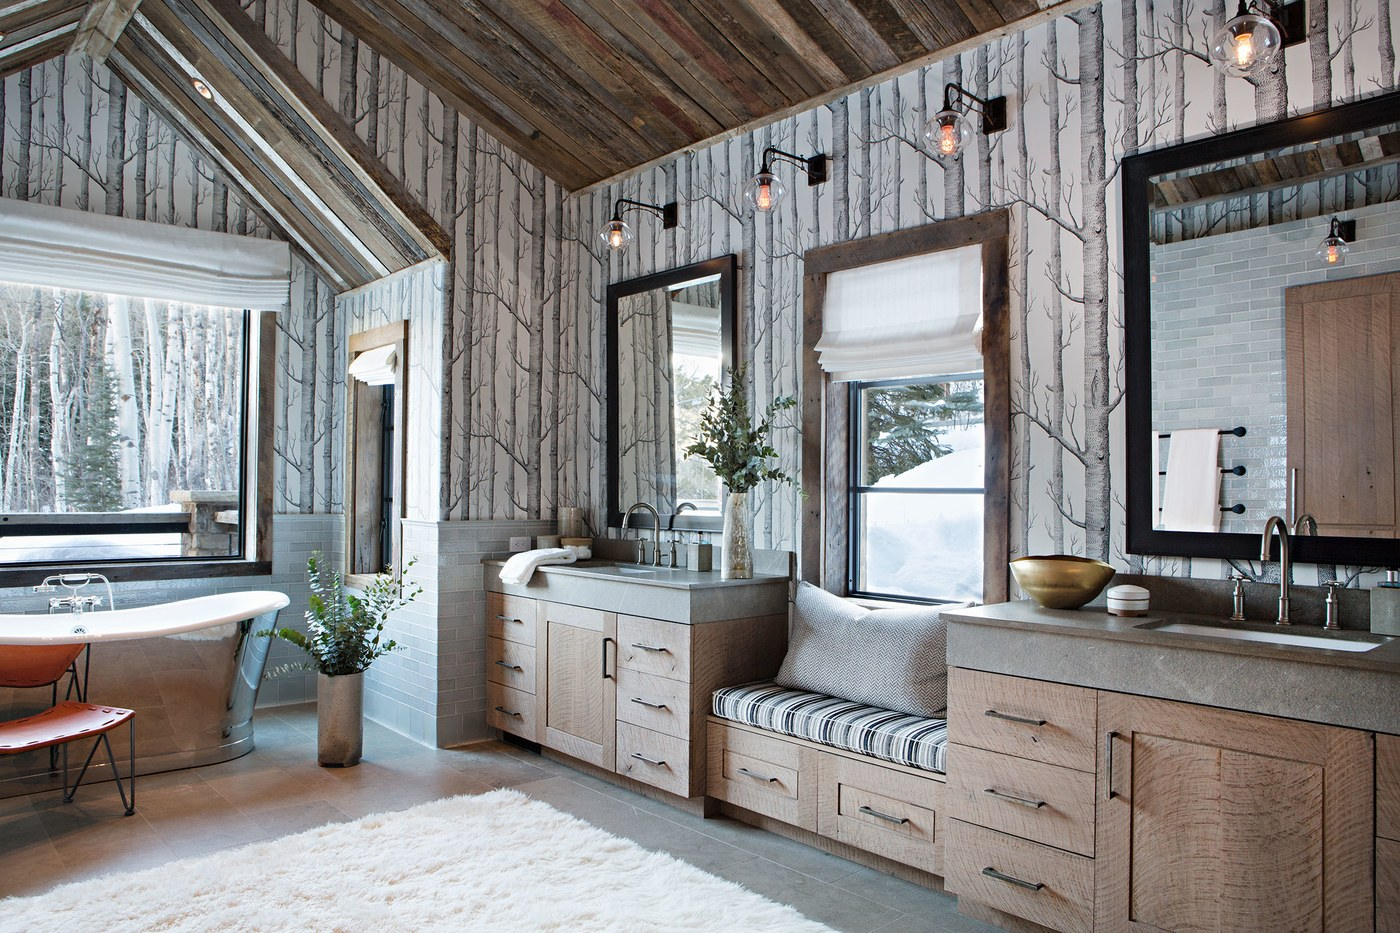 Rustic Design Ideas: There Is A Wide Variety Of Rustic Interior Design  Styles As Well As A Distinct Diversity In The Many Approaches One Can Take  To Achieve ...